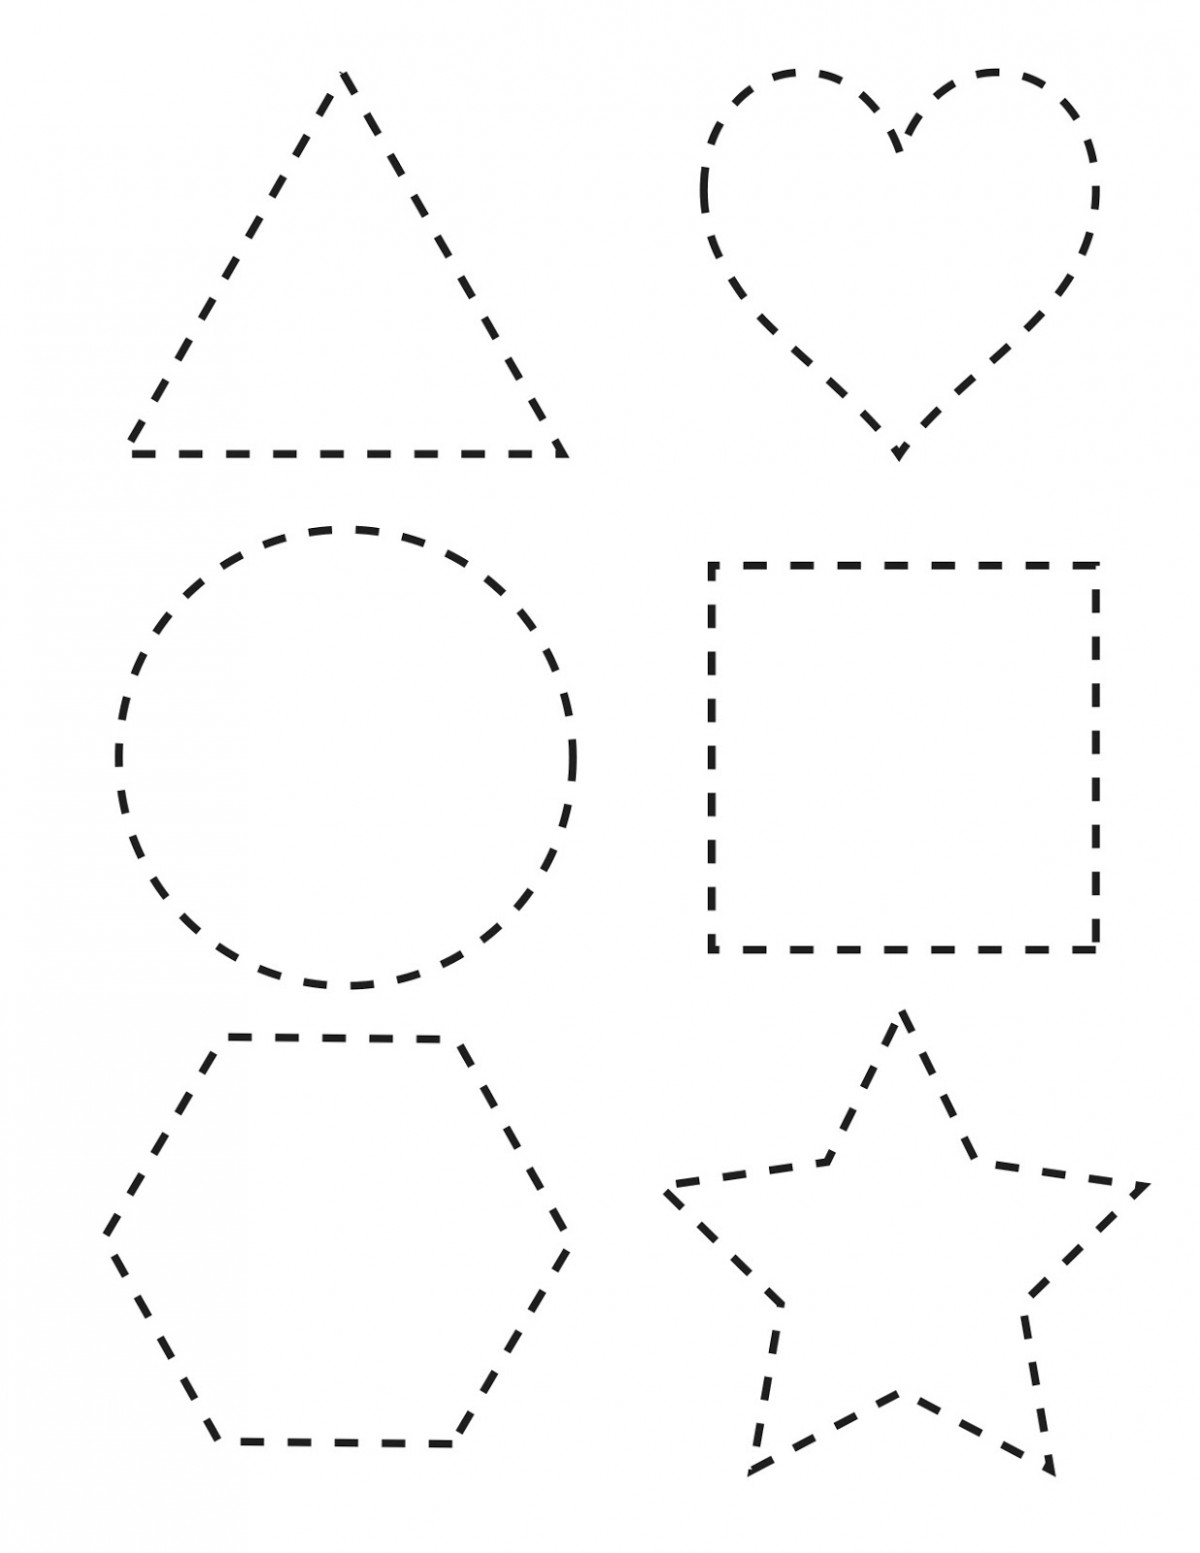 Tracing Pattern For Preschool Worksheets